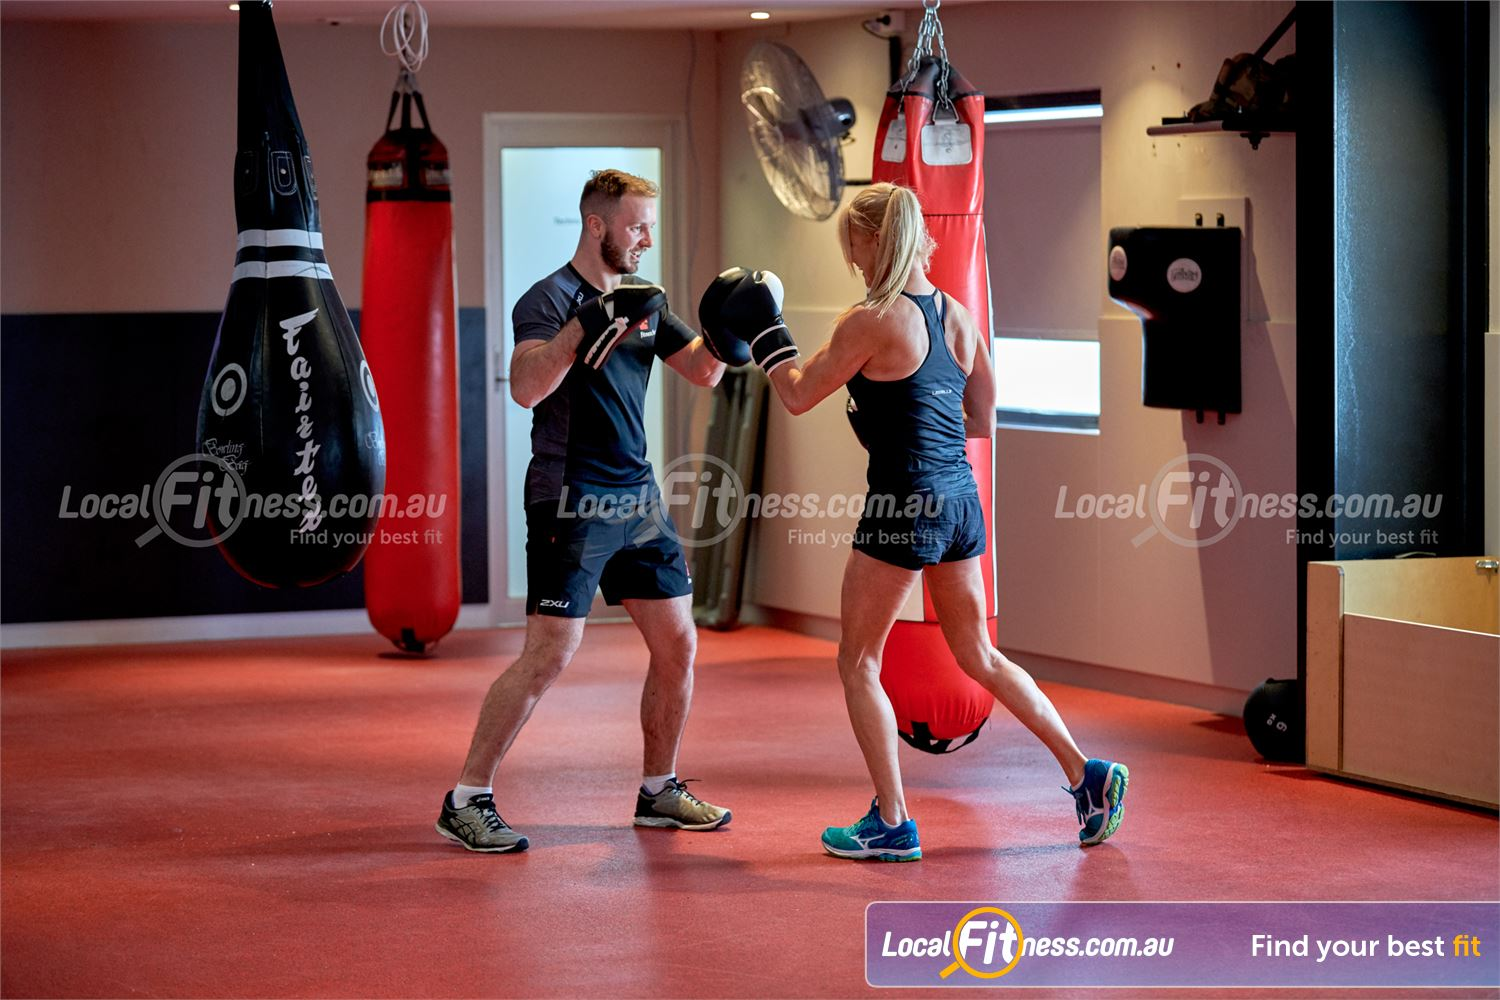 Fitness First Bayside Near Cheltenham Our Bayside personal trainers can give you a cardio boxing workout.